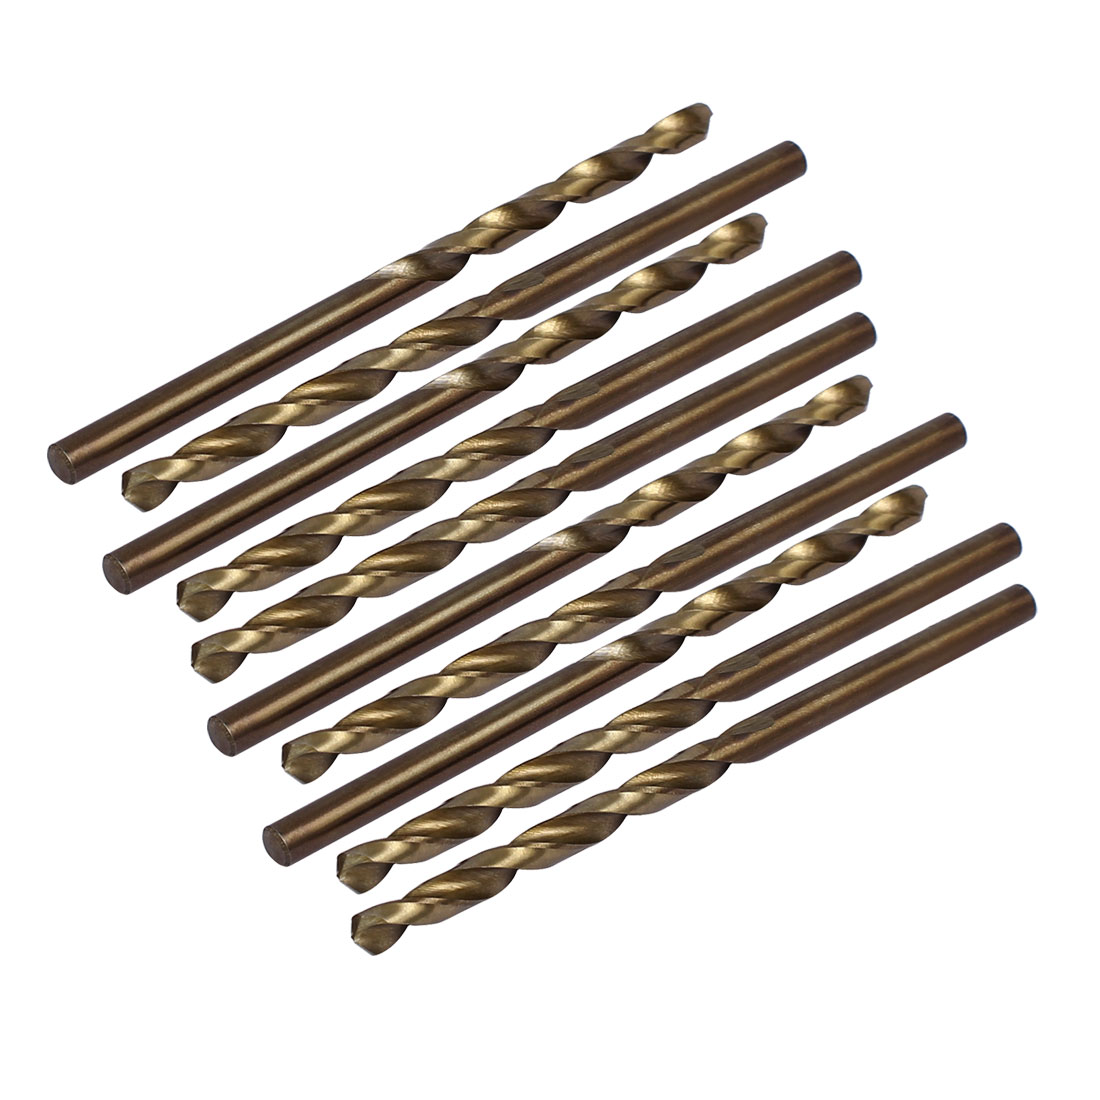 3.7mm Drilling Dia HSS Cobalt Metric Spiral Twist Drill Bit Rotary Tool 10pcs